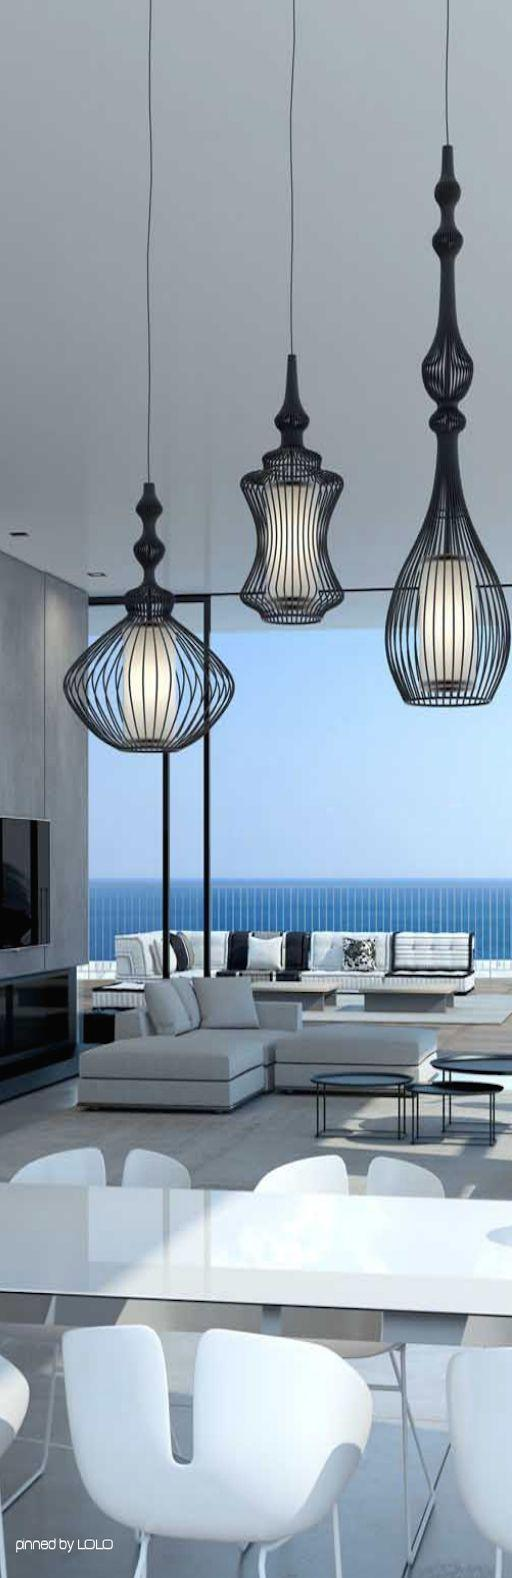 Expensive iron lamps - inside a spacious estate